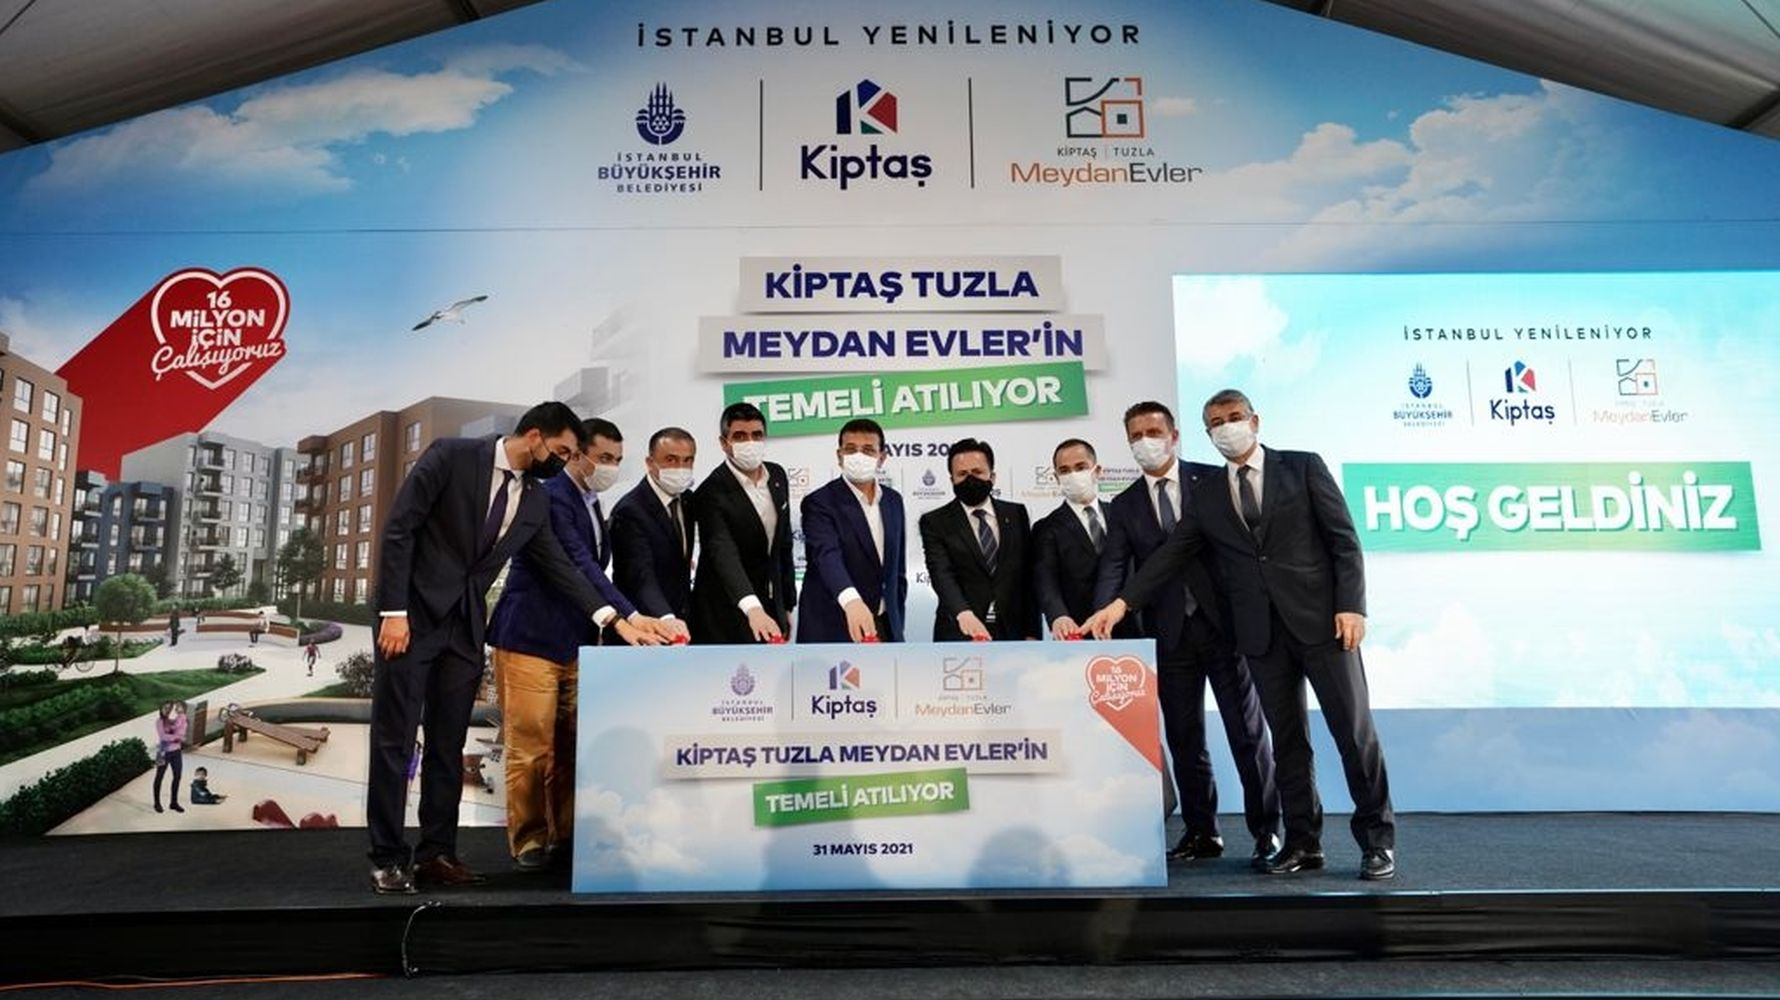 The foundations of the square houses were laid with kiptas salt